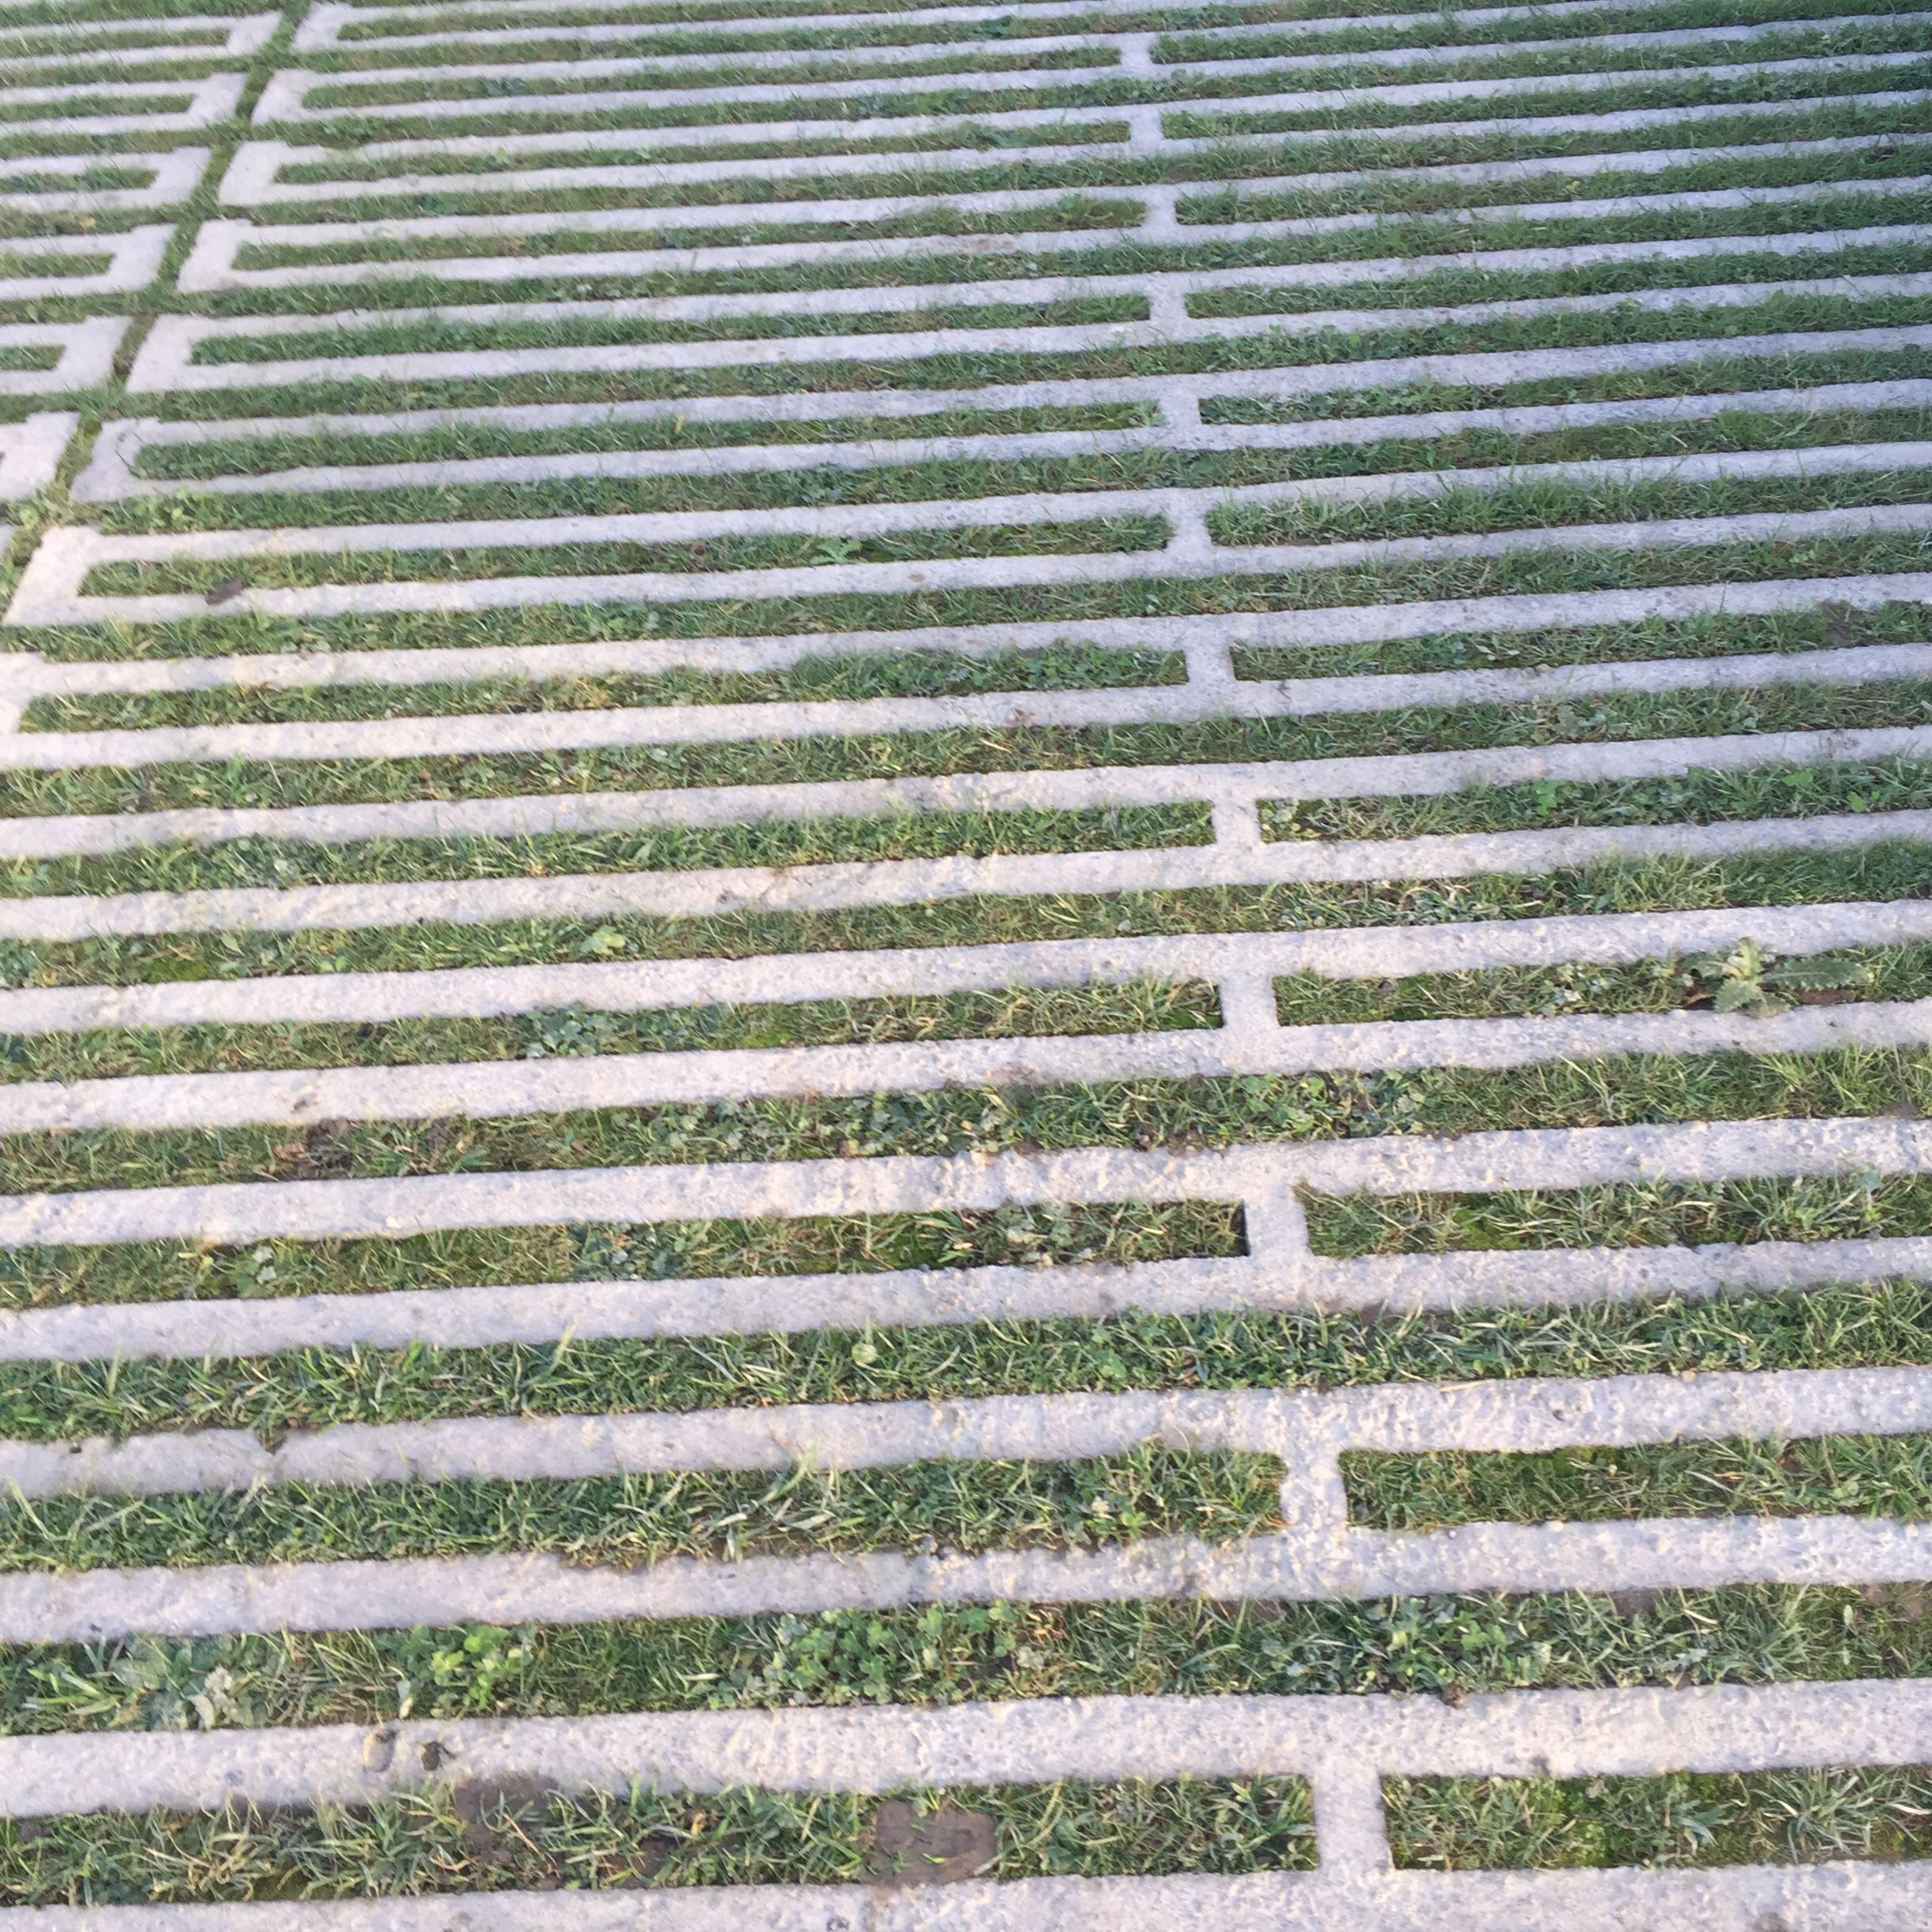 Concrete grass reinforcing pavers for car parking Hauser & Wirth